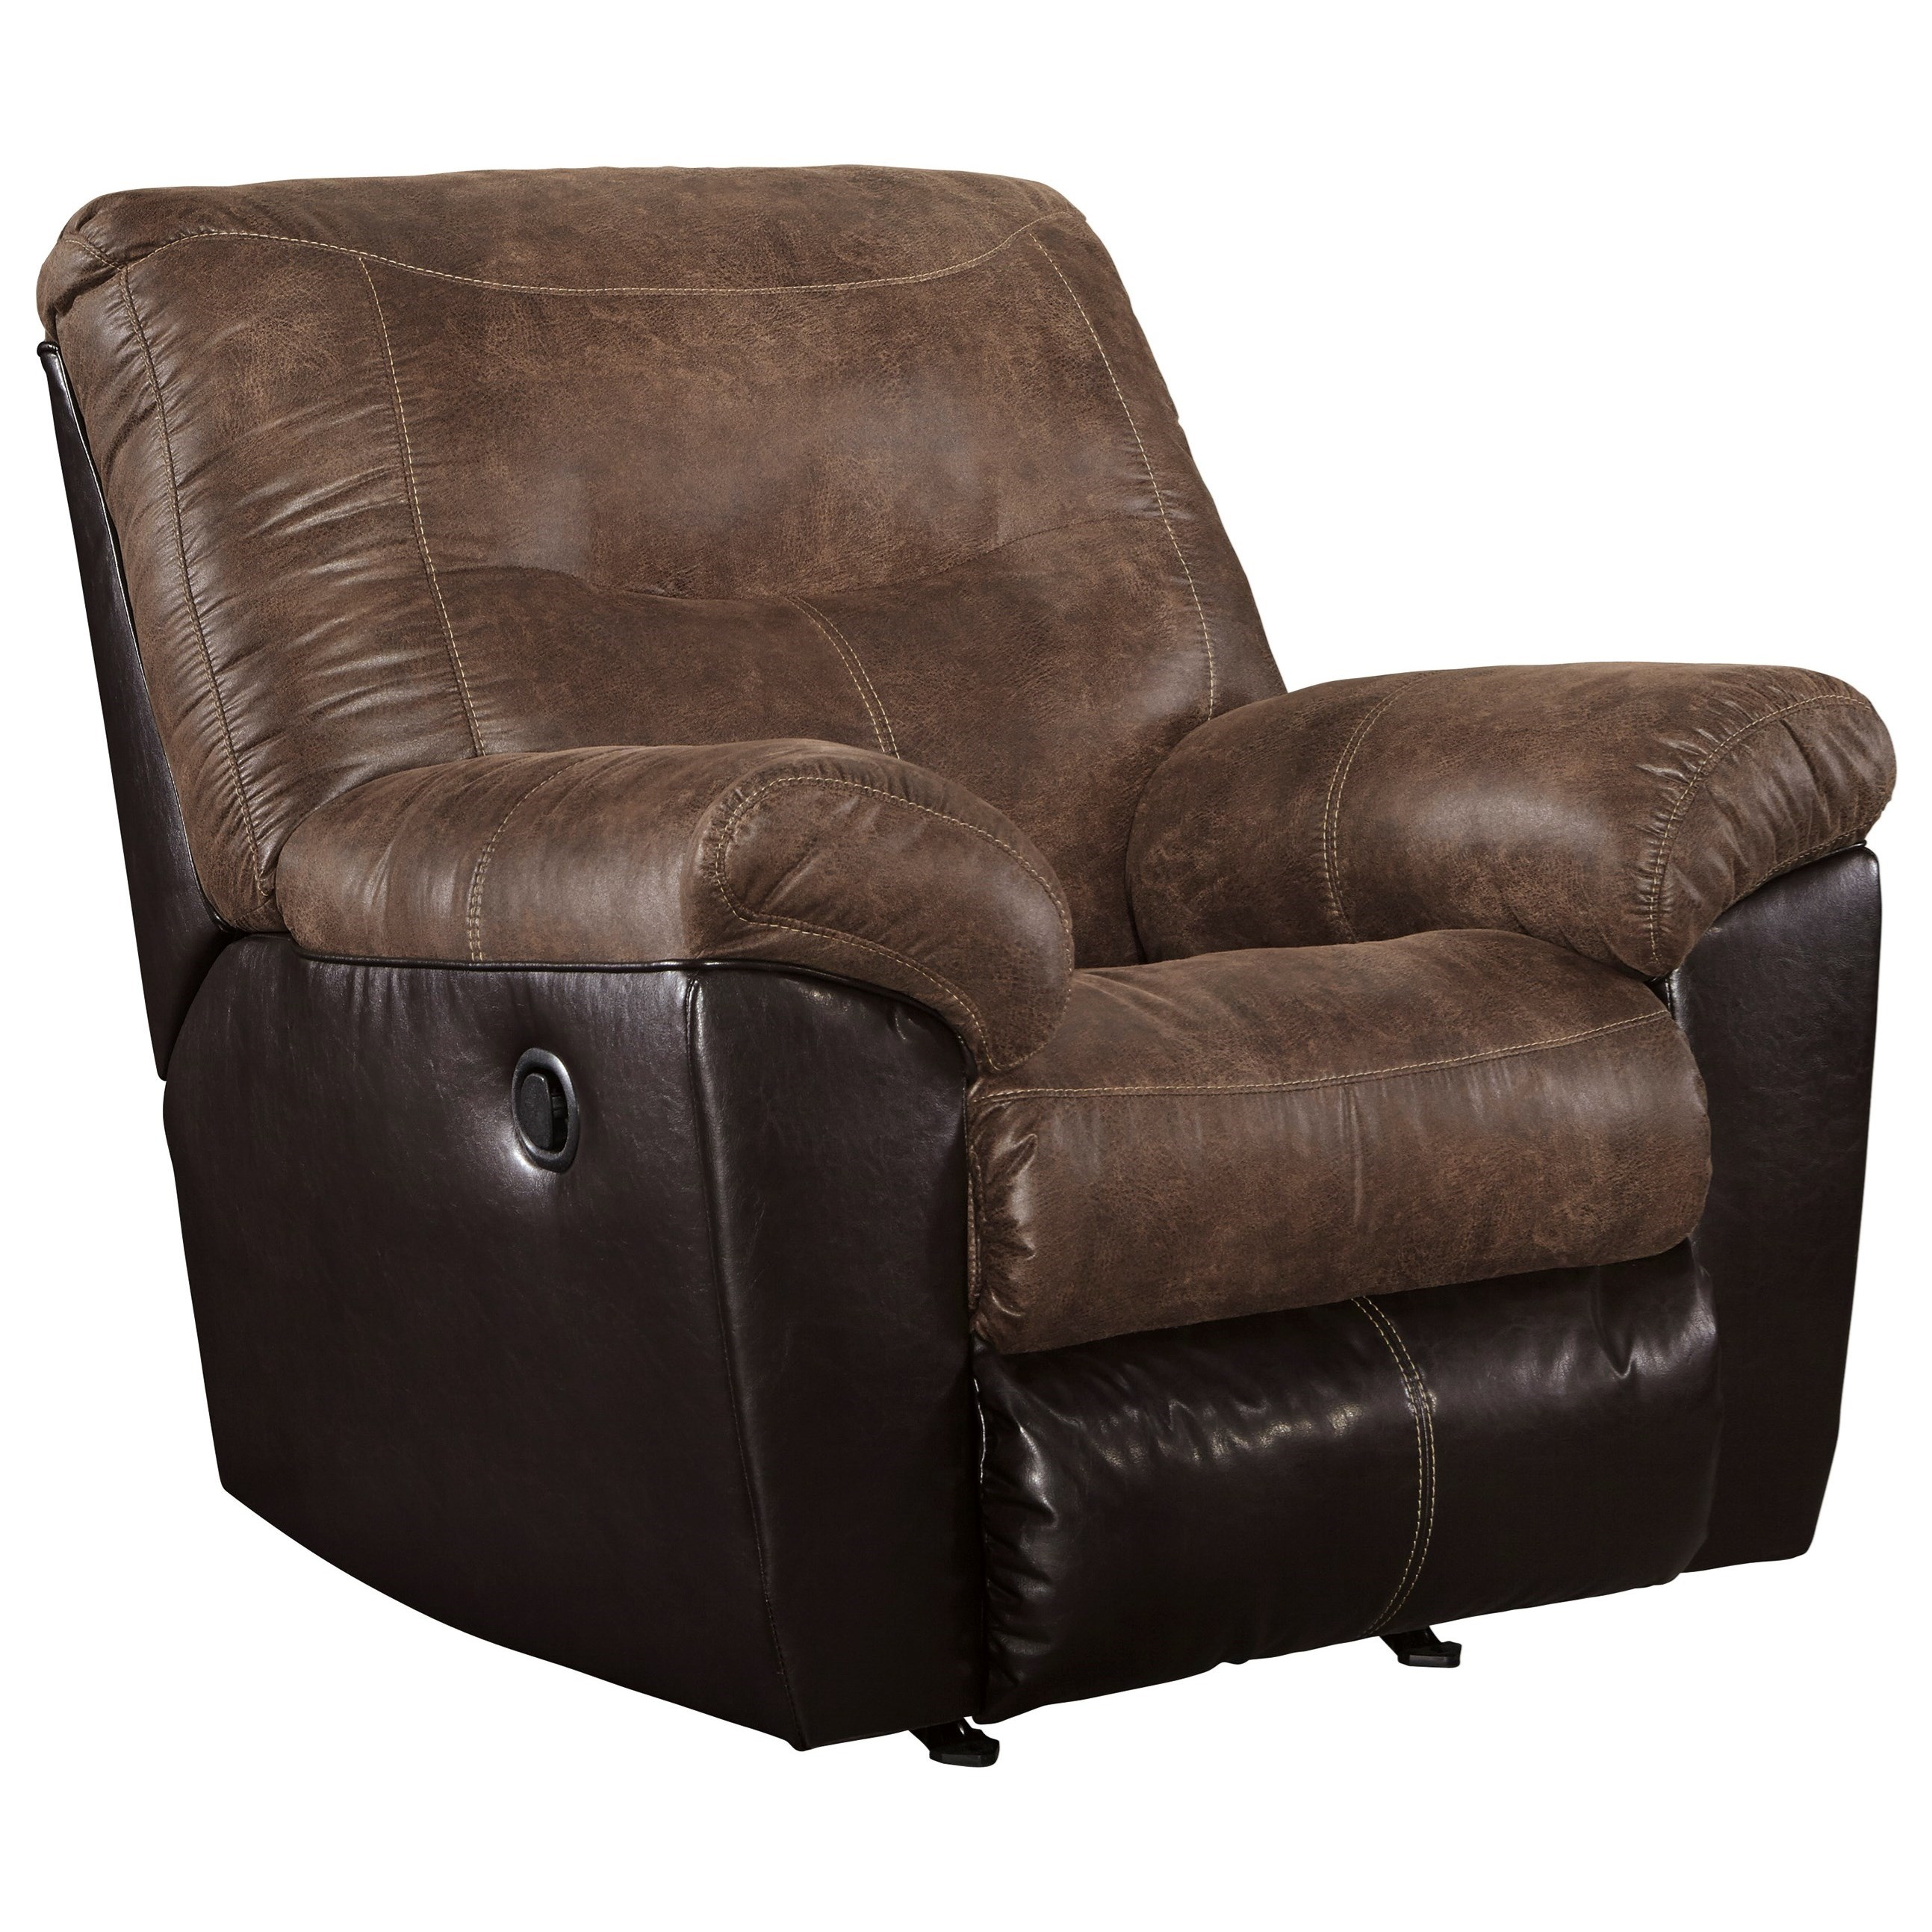 Signature Design by Ashley Follett Rocker Recliner - Item Number: 6520225